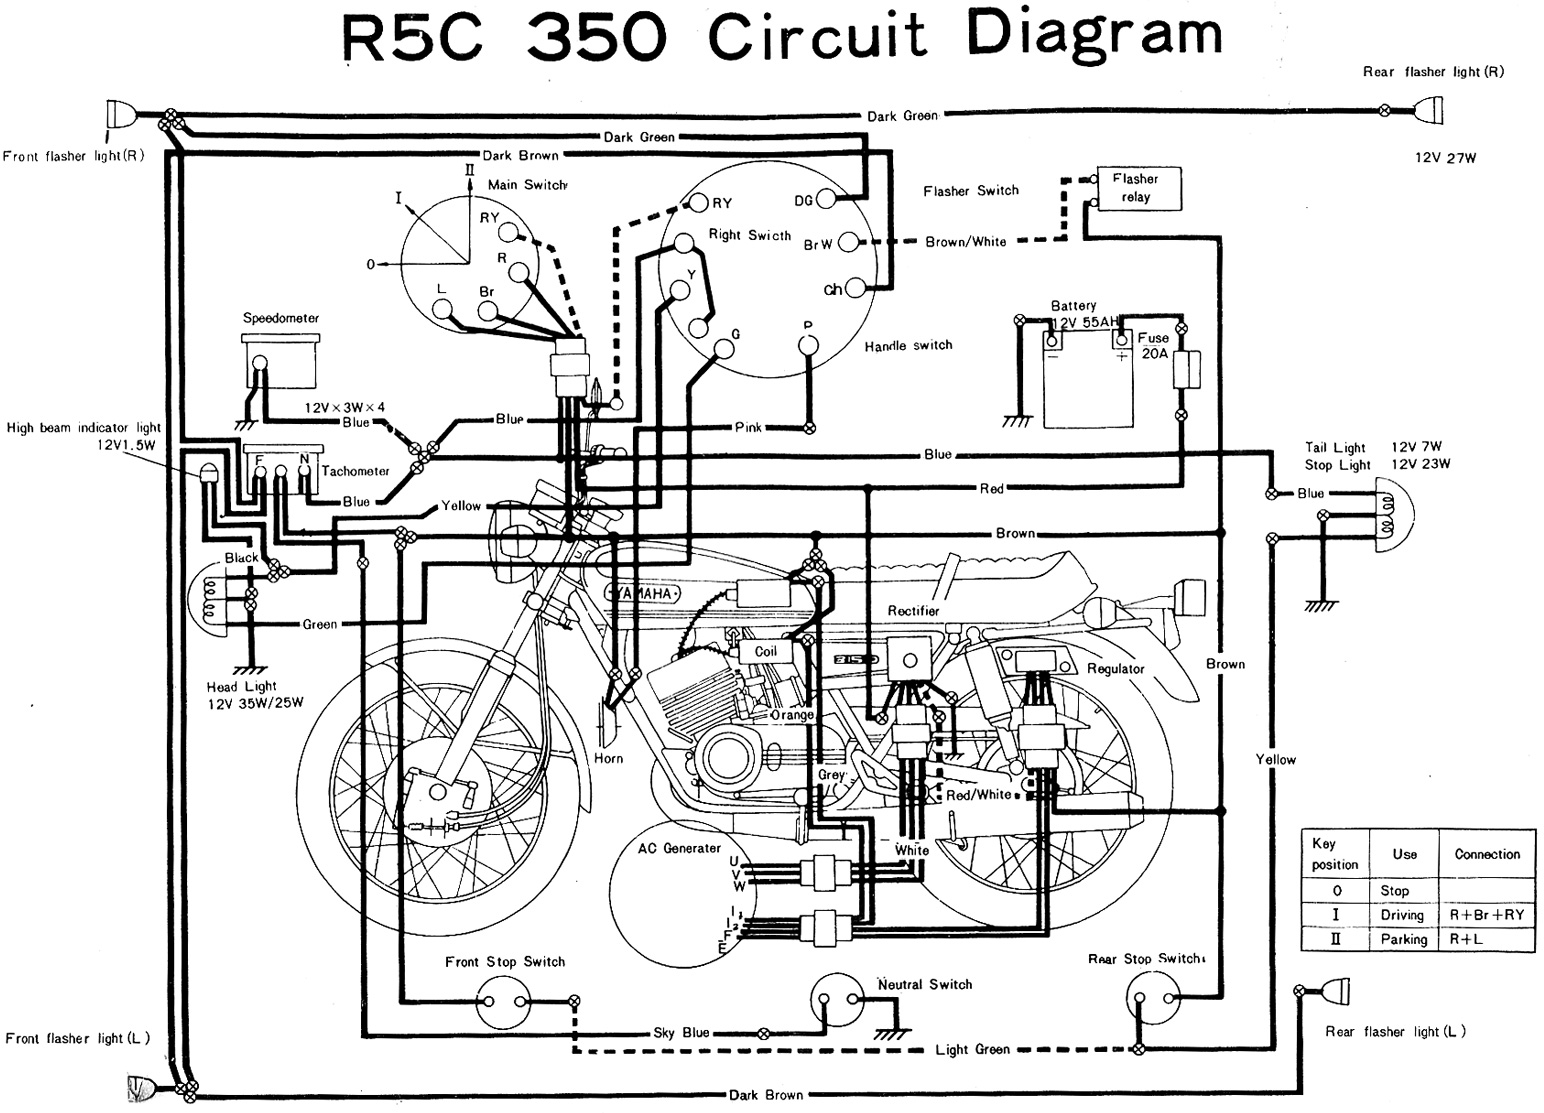 Motorcycle Wiring Diagrams Electrical And Diagram R5c 350